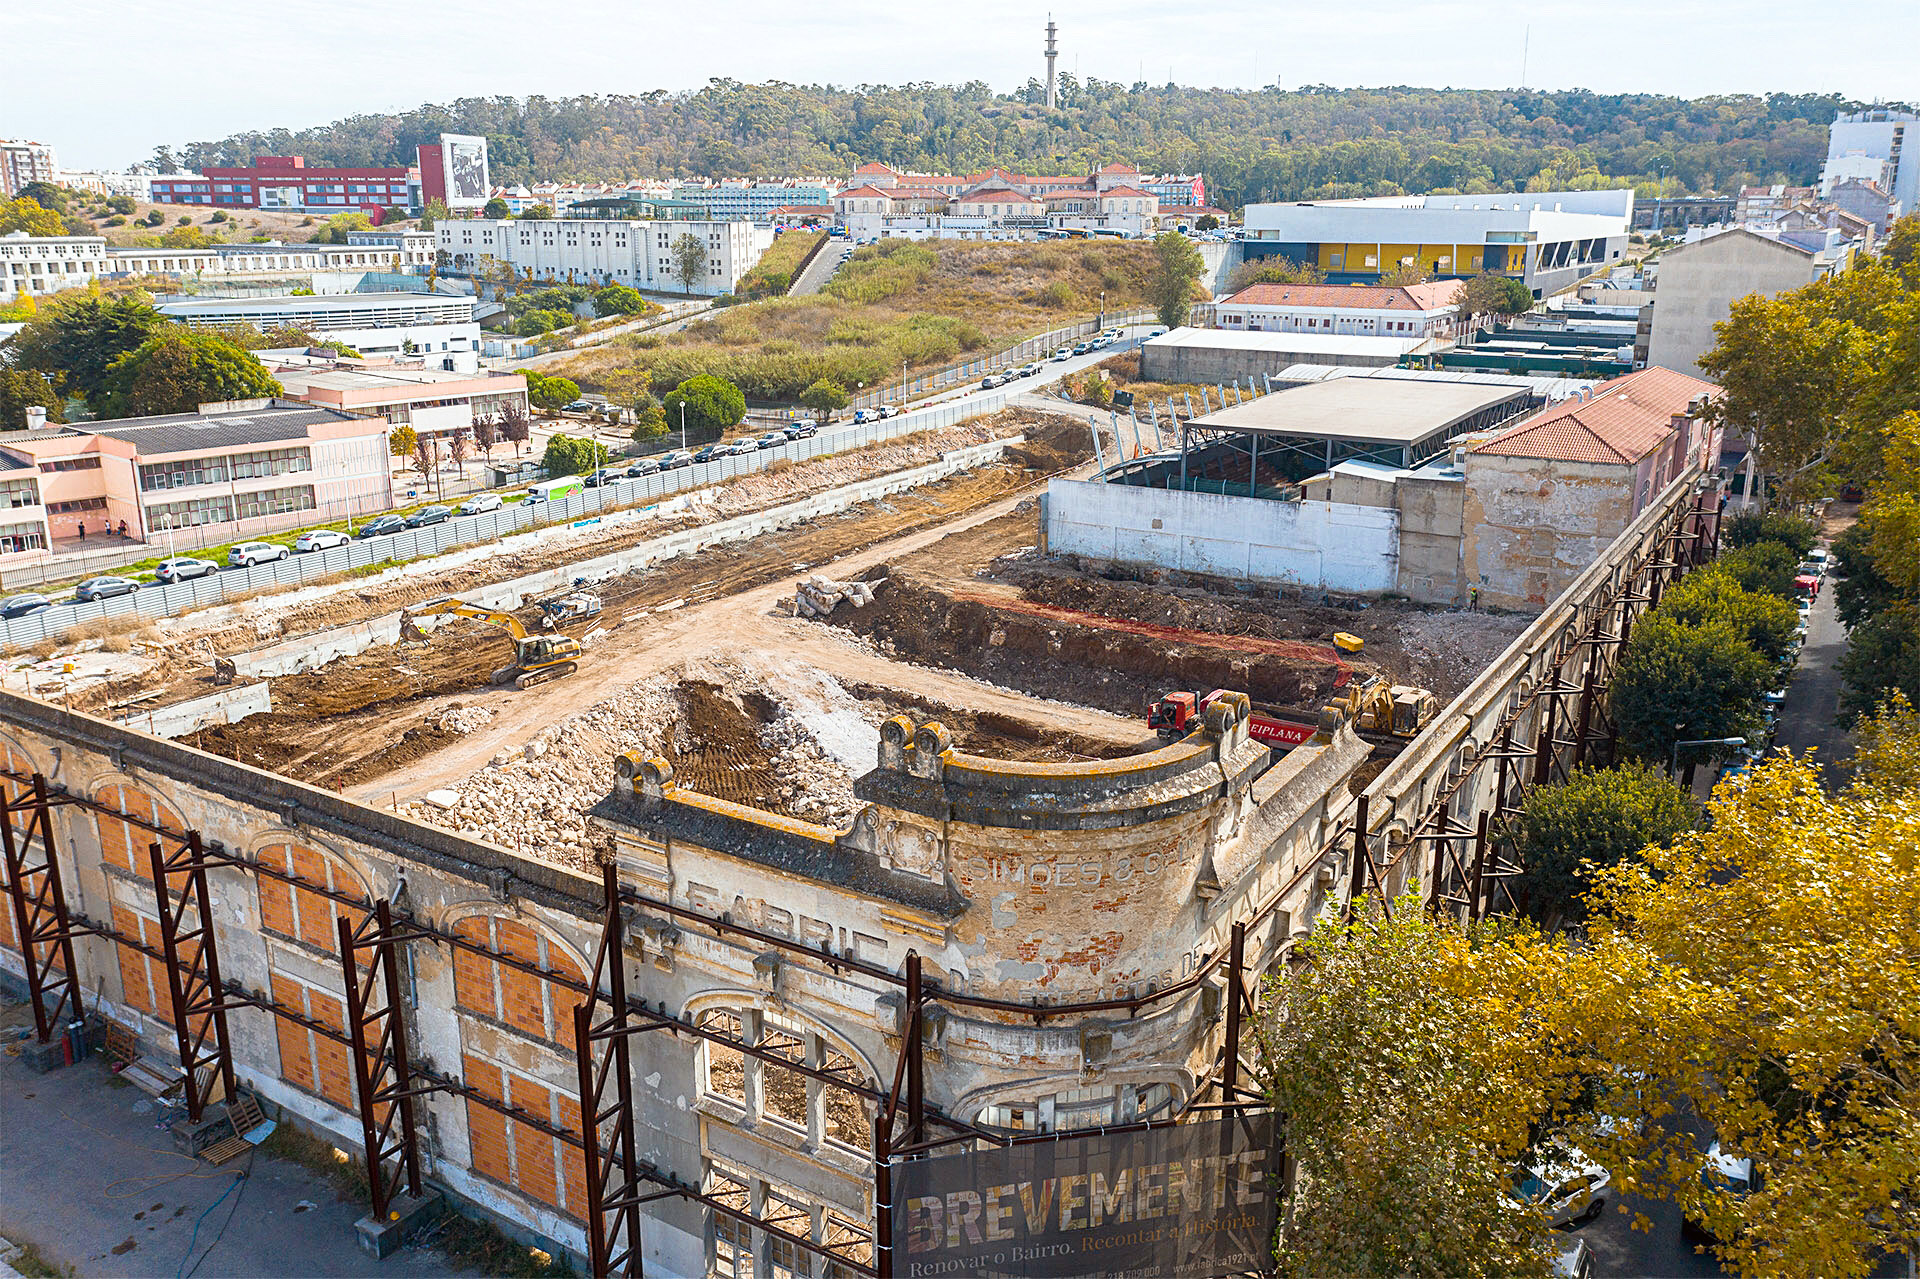 August 2019: Start of the conversion of the Simões & C.ª Factory